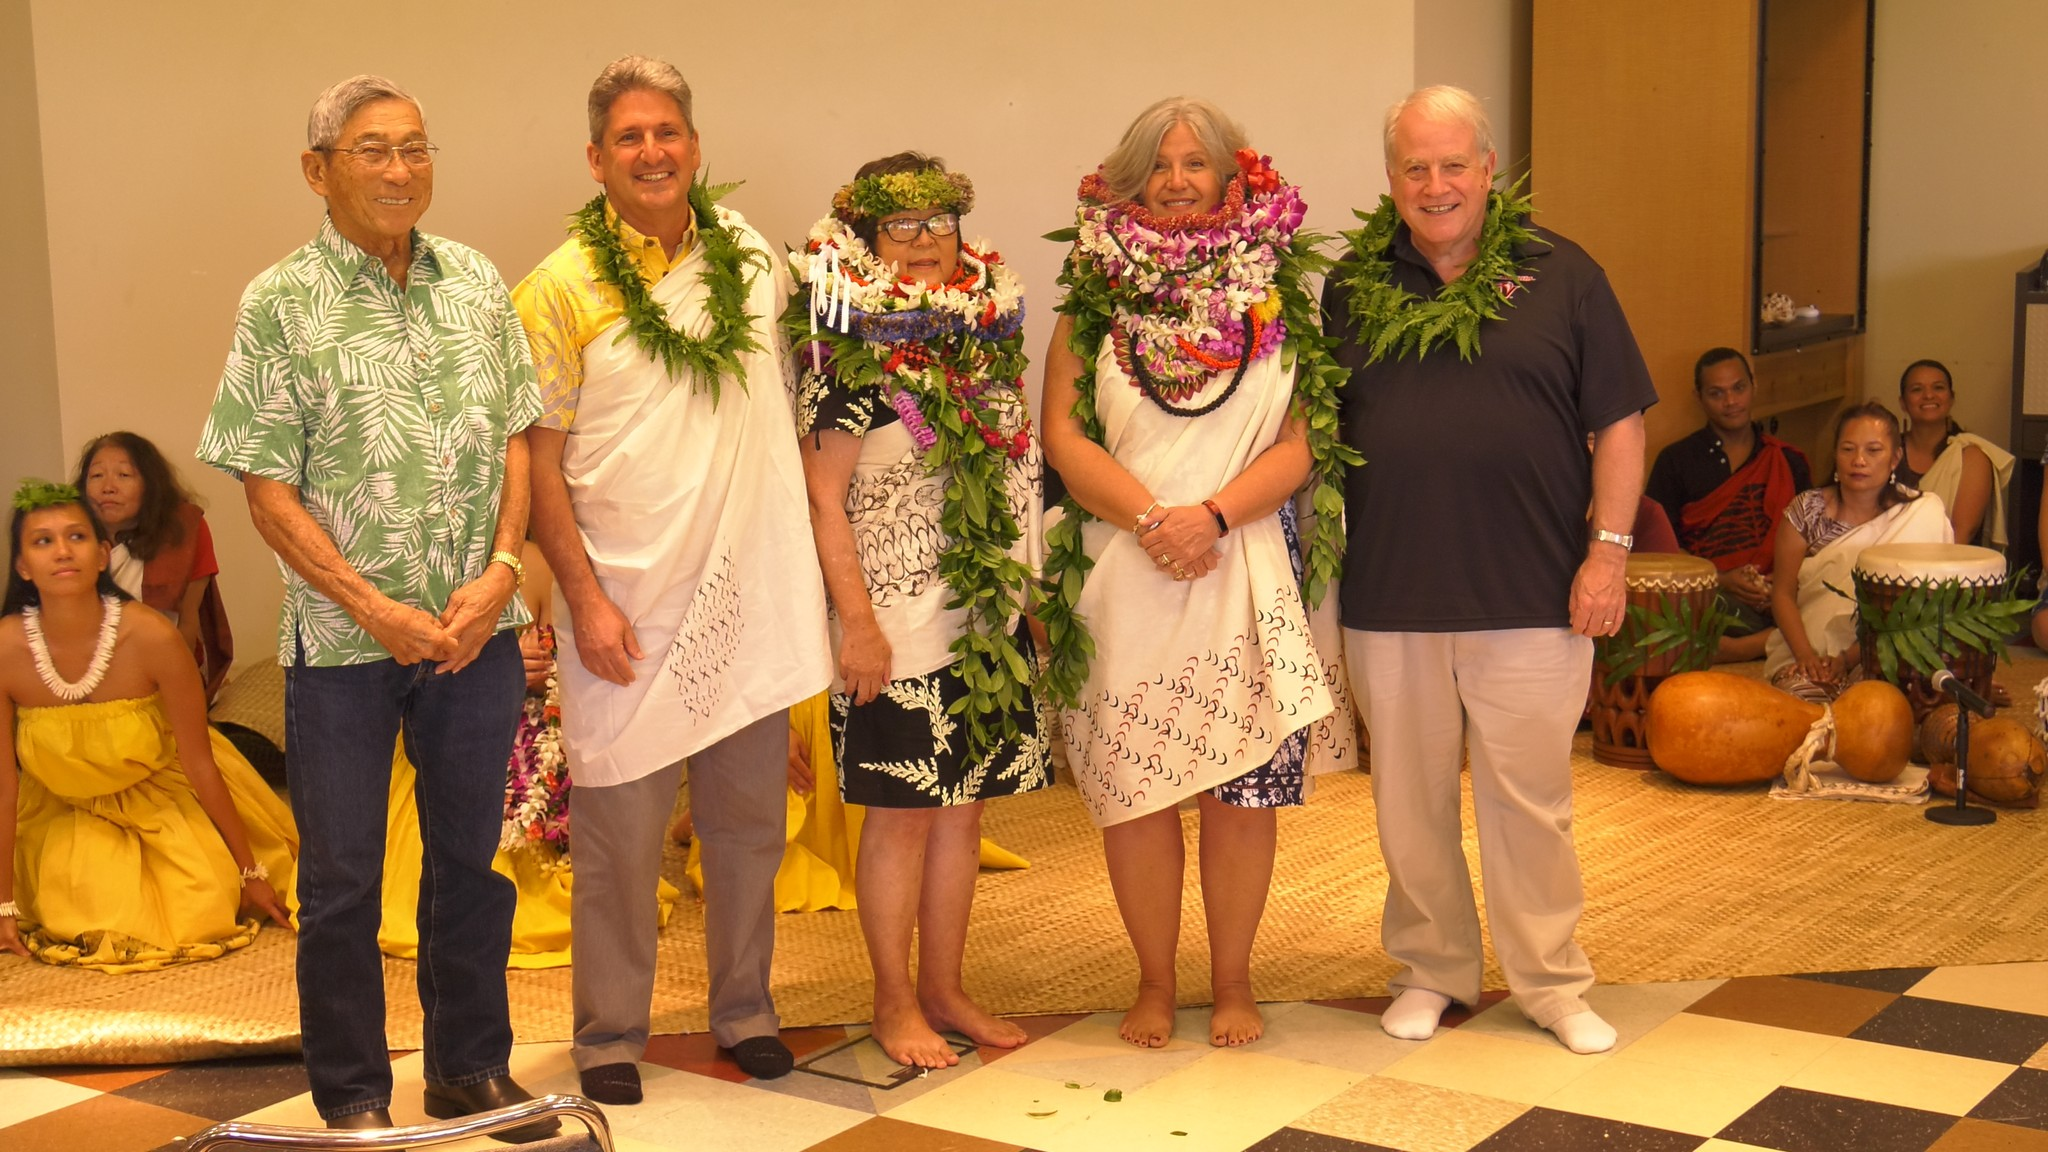 Group photo, standing, from left, From left: Hawaiʻi Island Mayor Harry Kim, UH President David Lassner, former interim Chancellor Marcia Sakai, Chancellor Bonnie D. Irwin and her husband author Ned Huston.